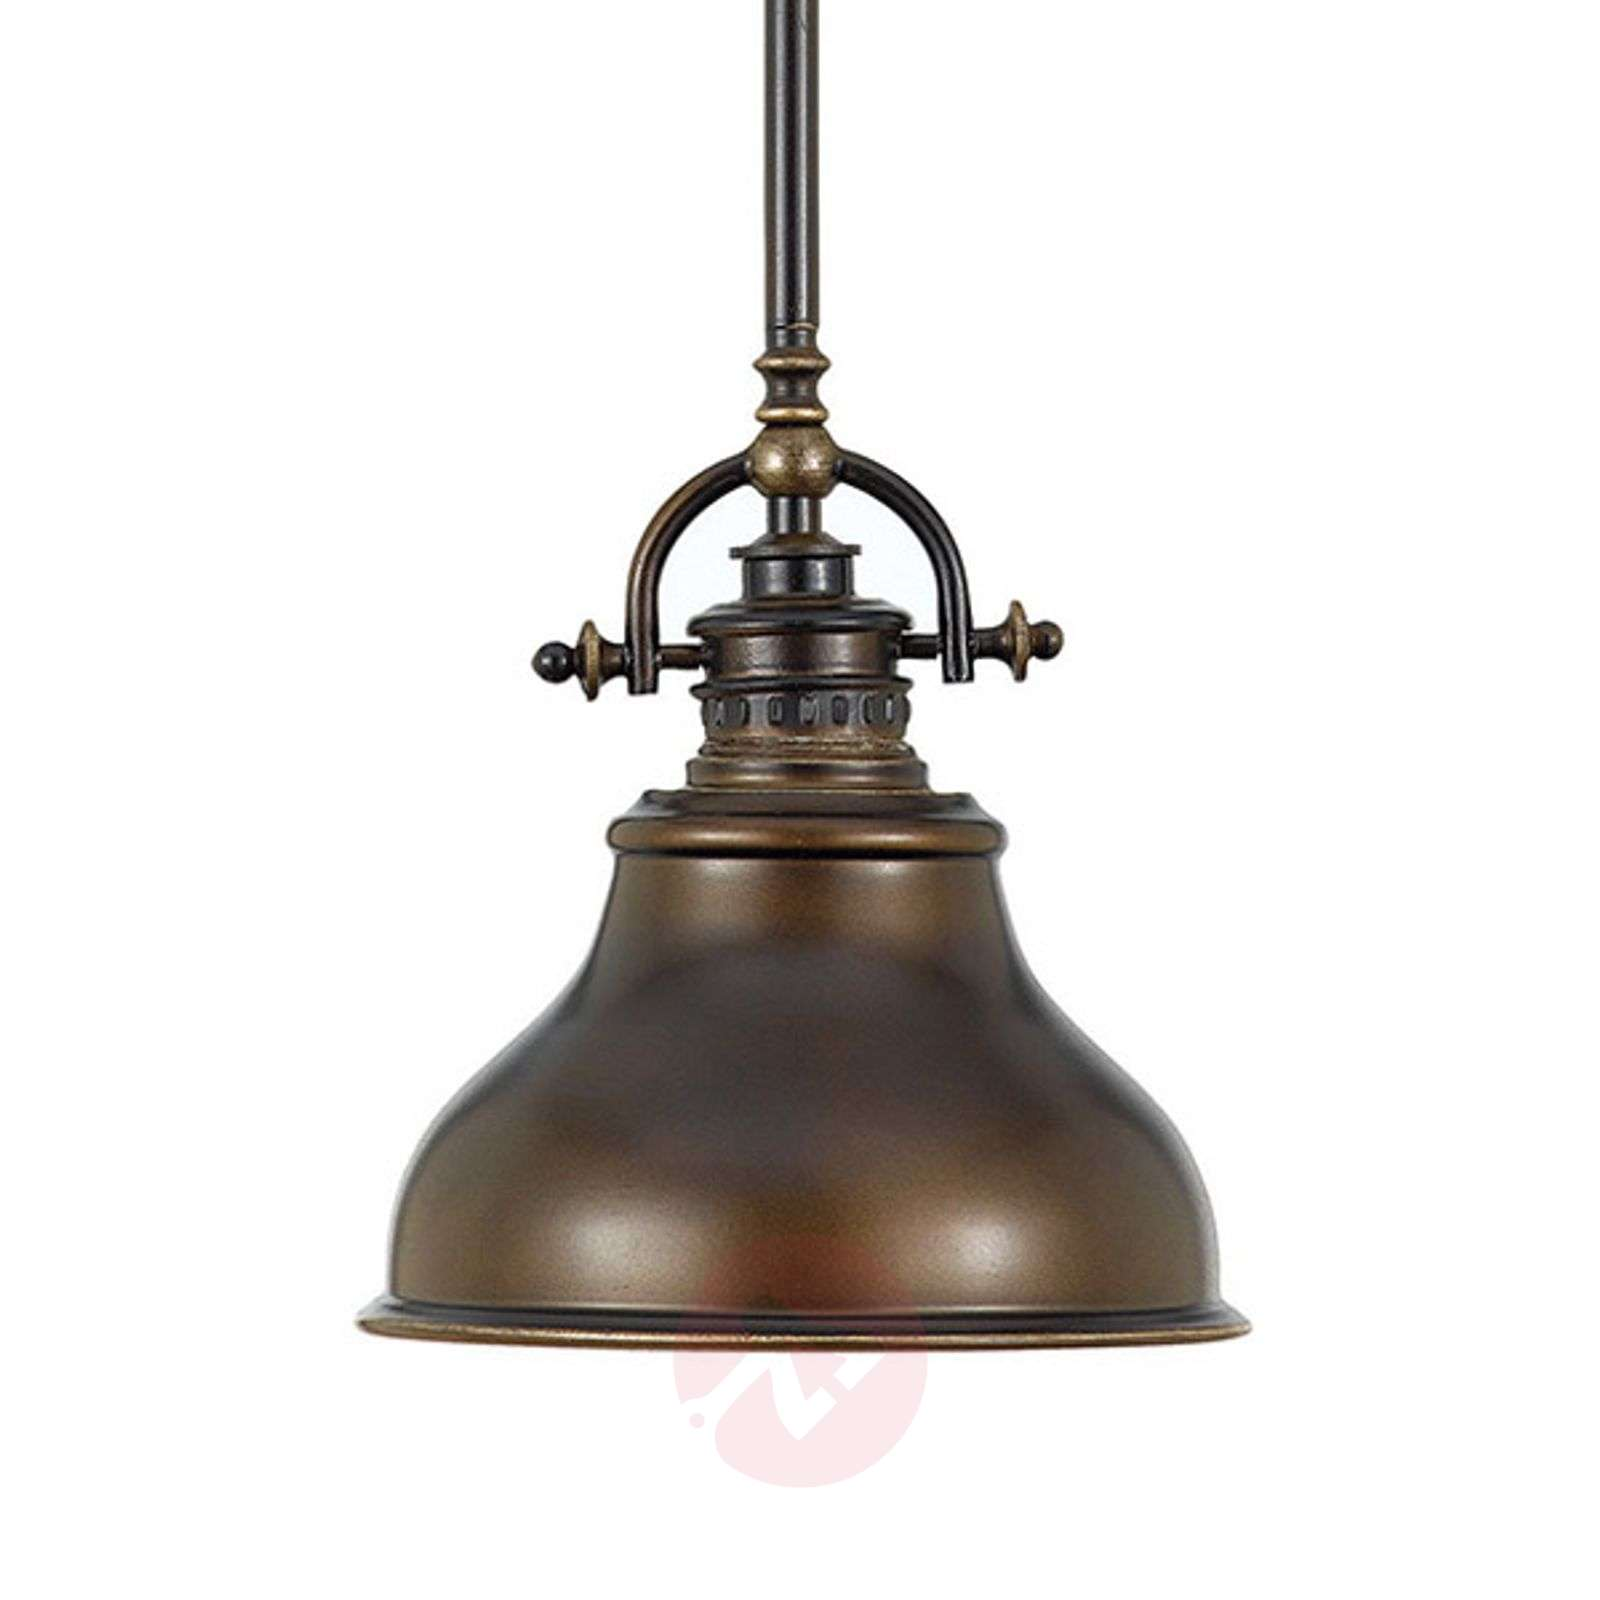 Suspension Emery style industriel bronze Ø 20,3 cm-3048325-01